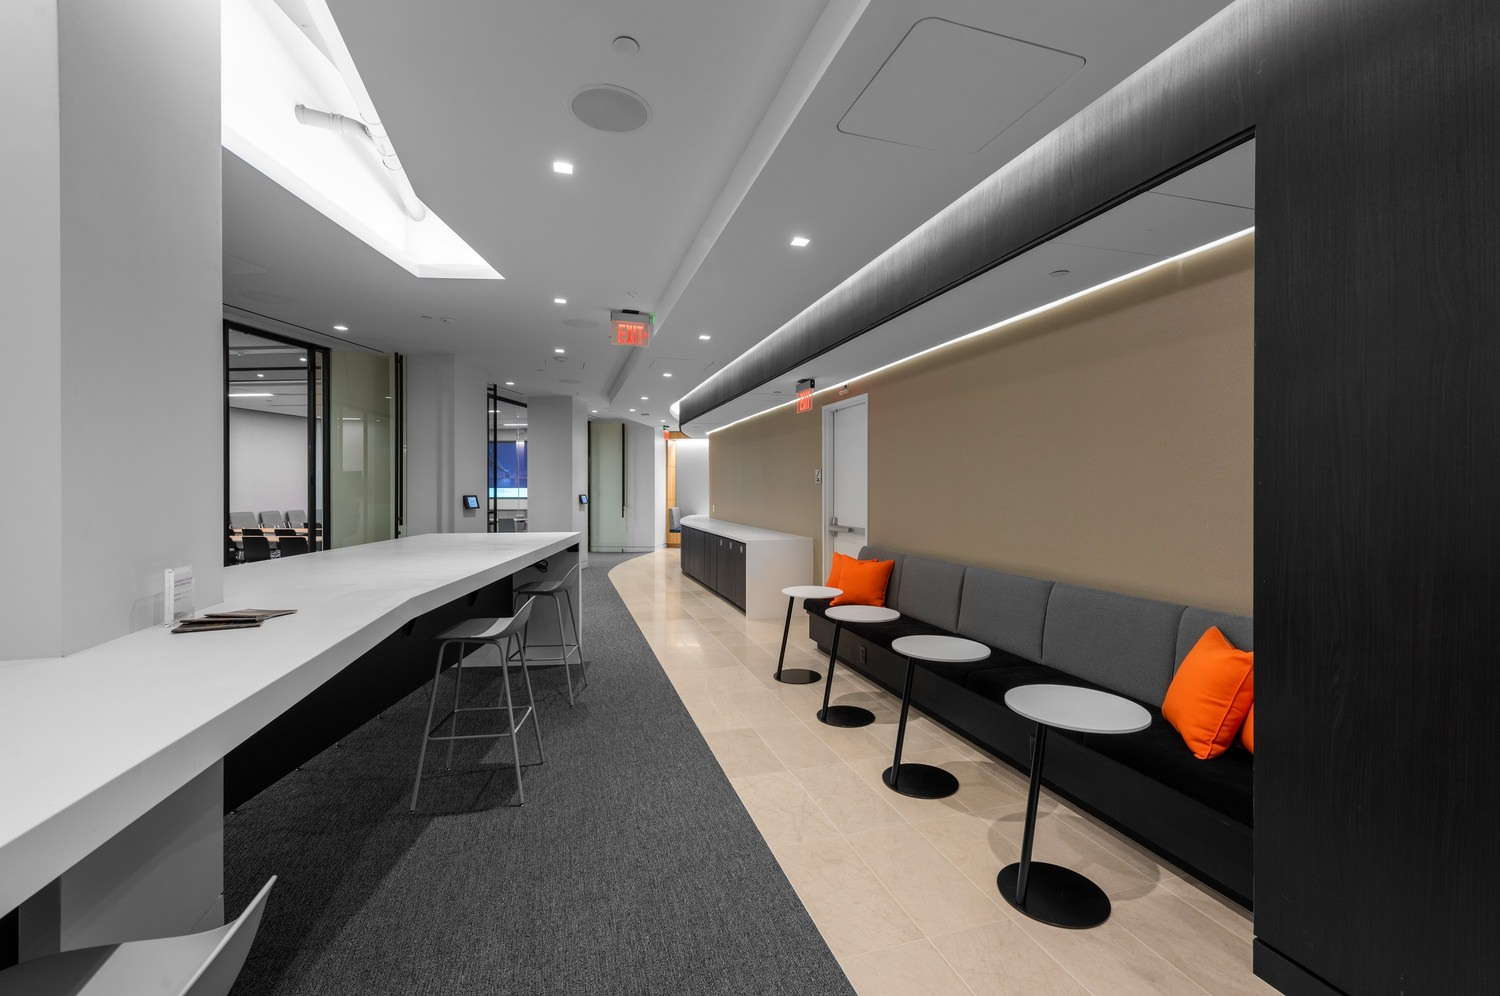 Break room with tables and chairs lined along the wall near some glass sliding doors.